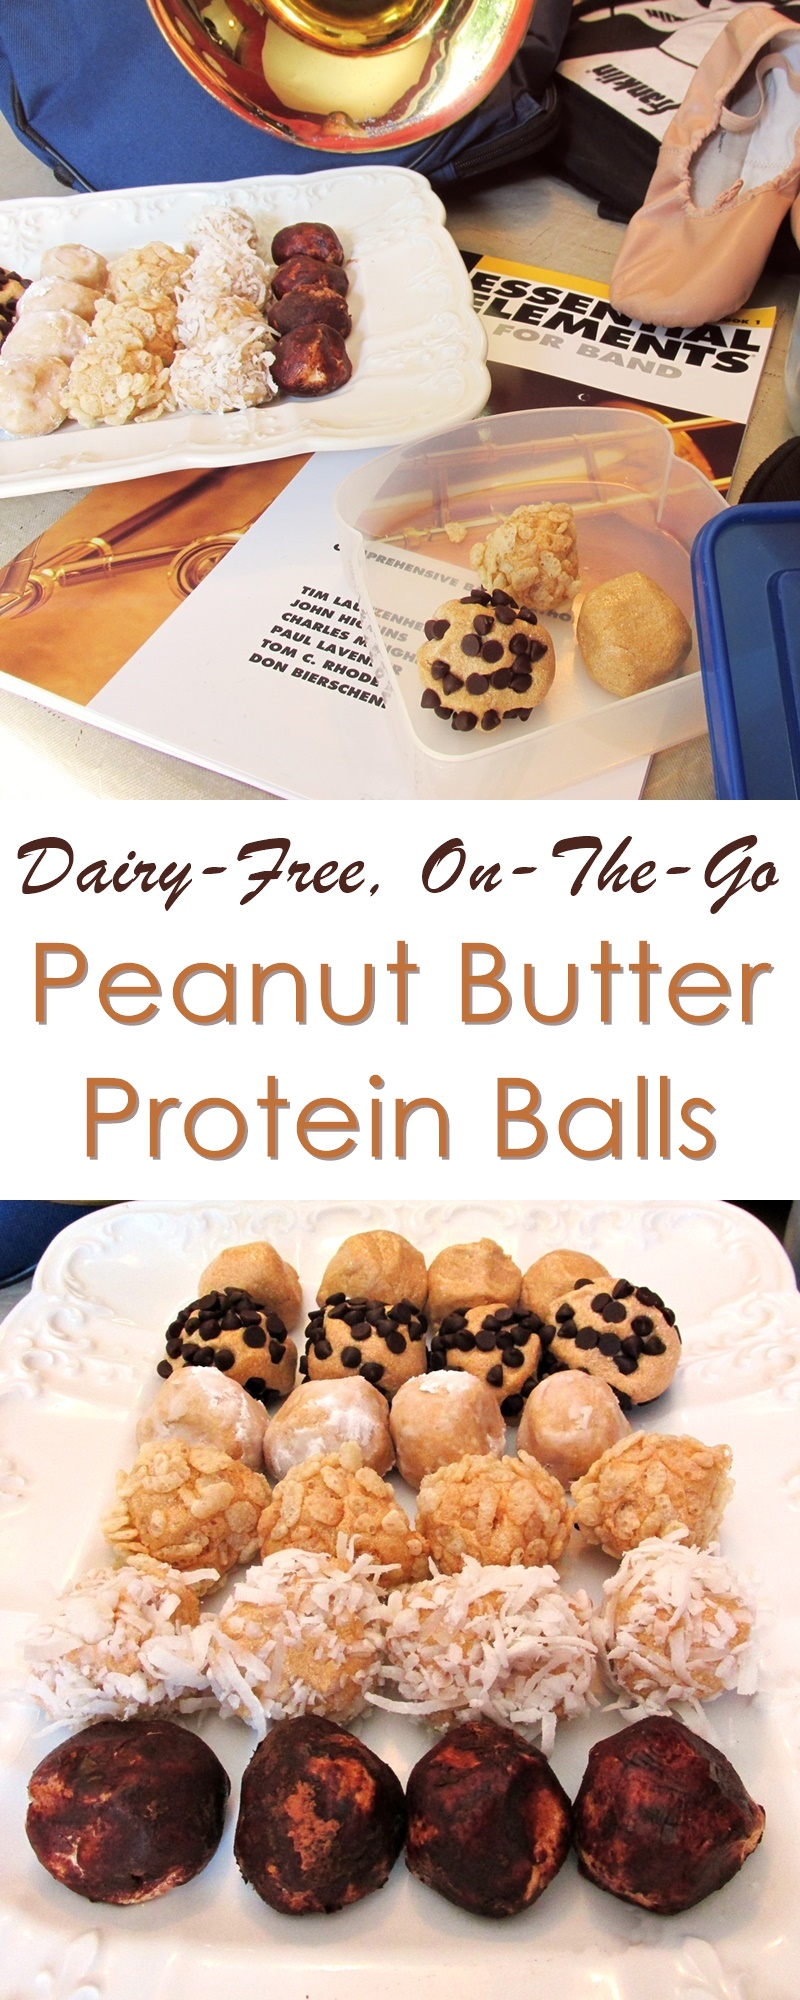 Dairy-Free Peanut Butter Protein Balls - an easy energy recipe for busy days!